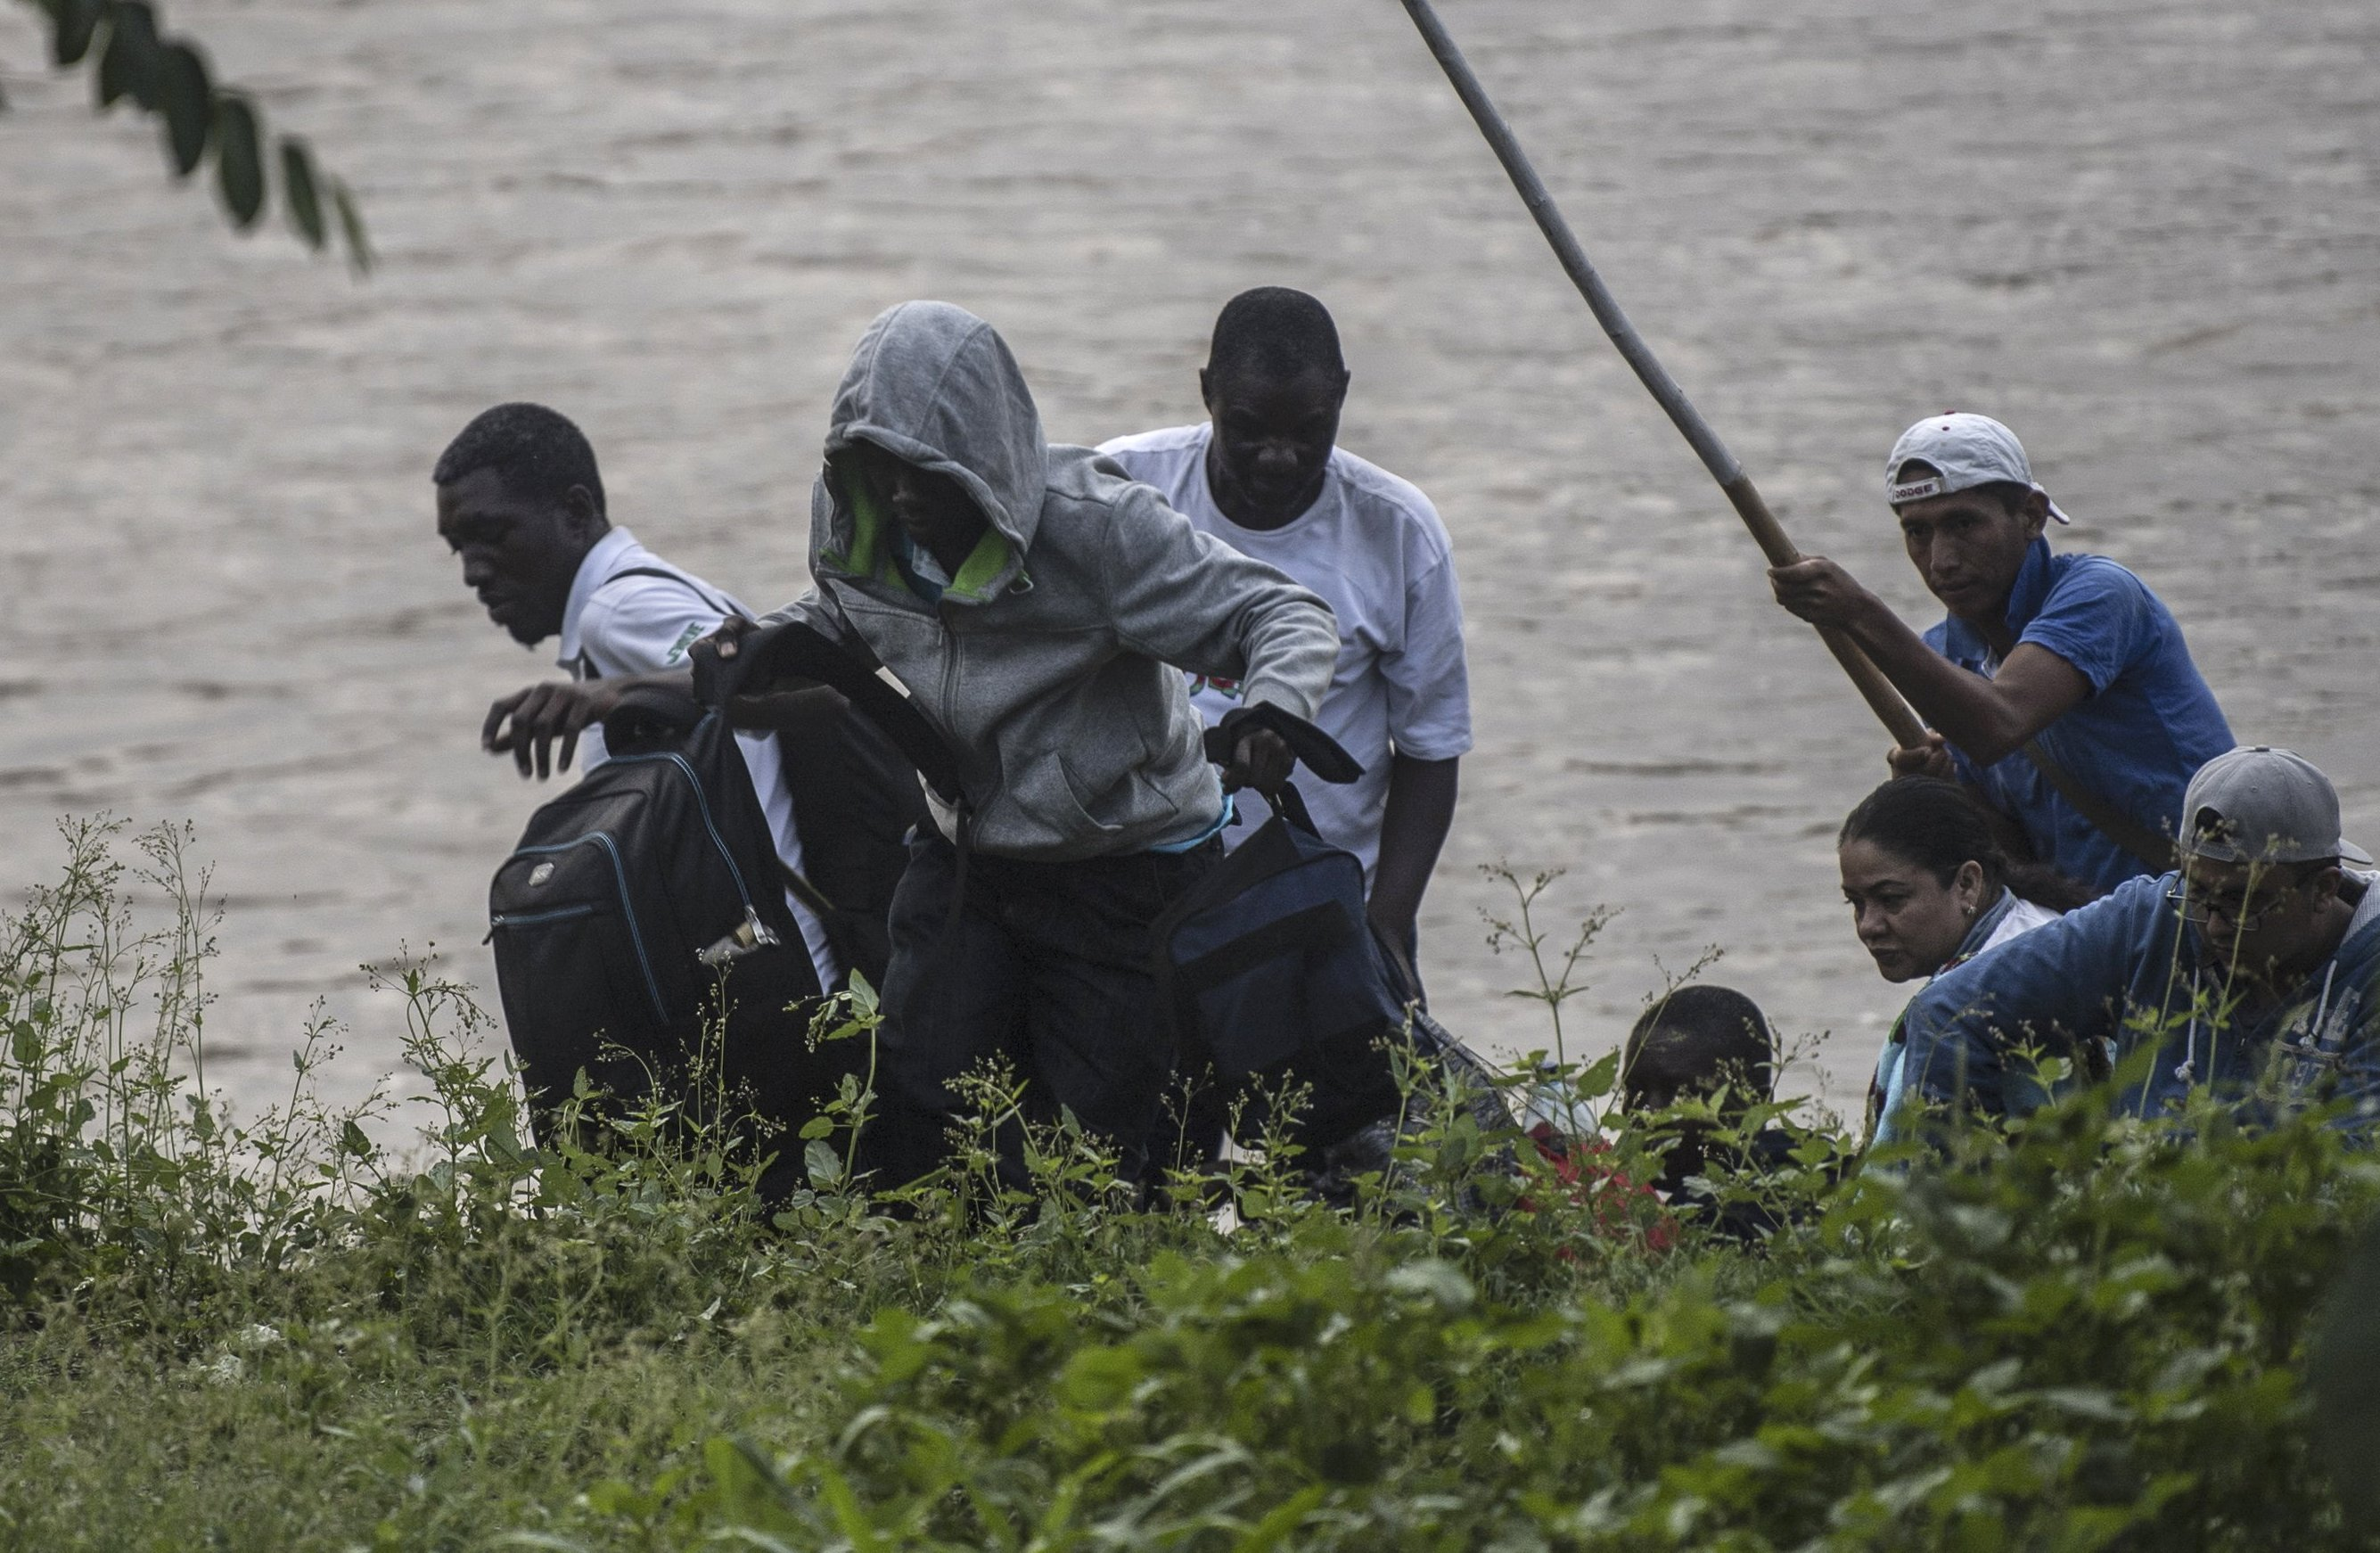 "African migrants and locals arrive in Ciudad Hidalgo in Chiapas State, Mexico, after illegally crossing the Suchiate river from Tecun Uman in Guatemala on a makeshift raft, on June 10, 2019. - In the framework of Mexico's deal to curb migration in order to avert US President Donald Trump's threat of tariffs, Mexico's Foreign Minister Marcelo Ebrard said Mexico will discuss a ""safe third country"" agreement with the US -- in which migrants entering Mexican territory must apply for asylum there rather than in the US -- if the flow of undocumented immigrants continues. (Photo by Pedro PARDO / AFP) (Photo credit should read PEDRO PARDO/AFP/Getty Images)"